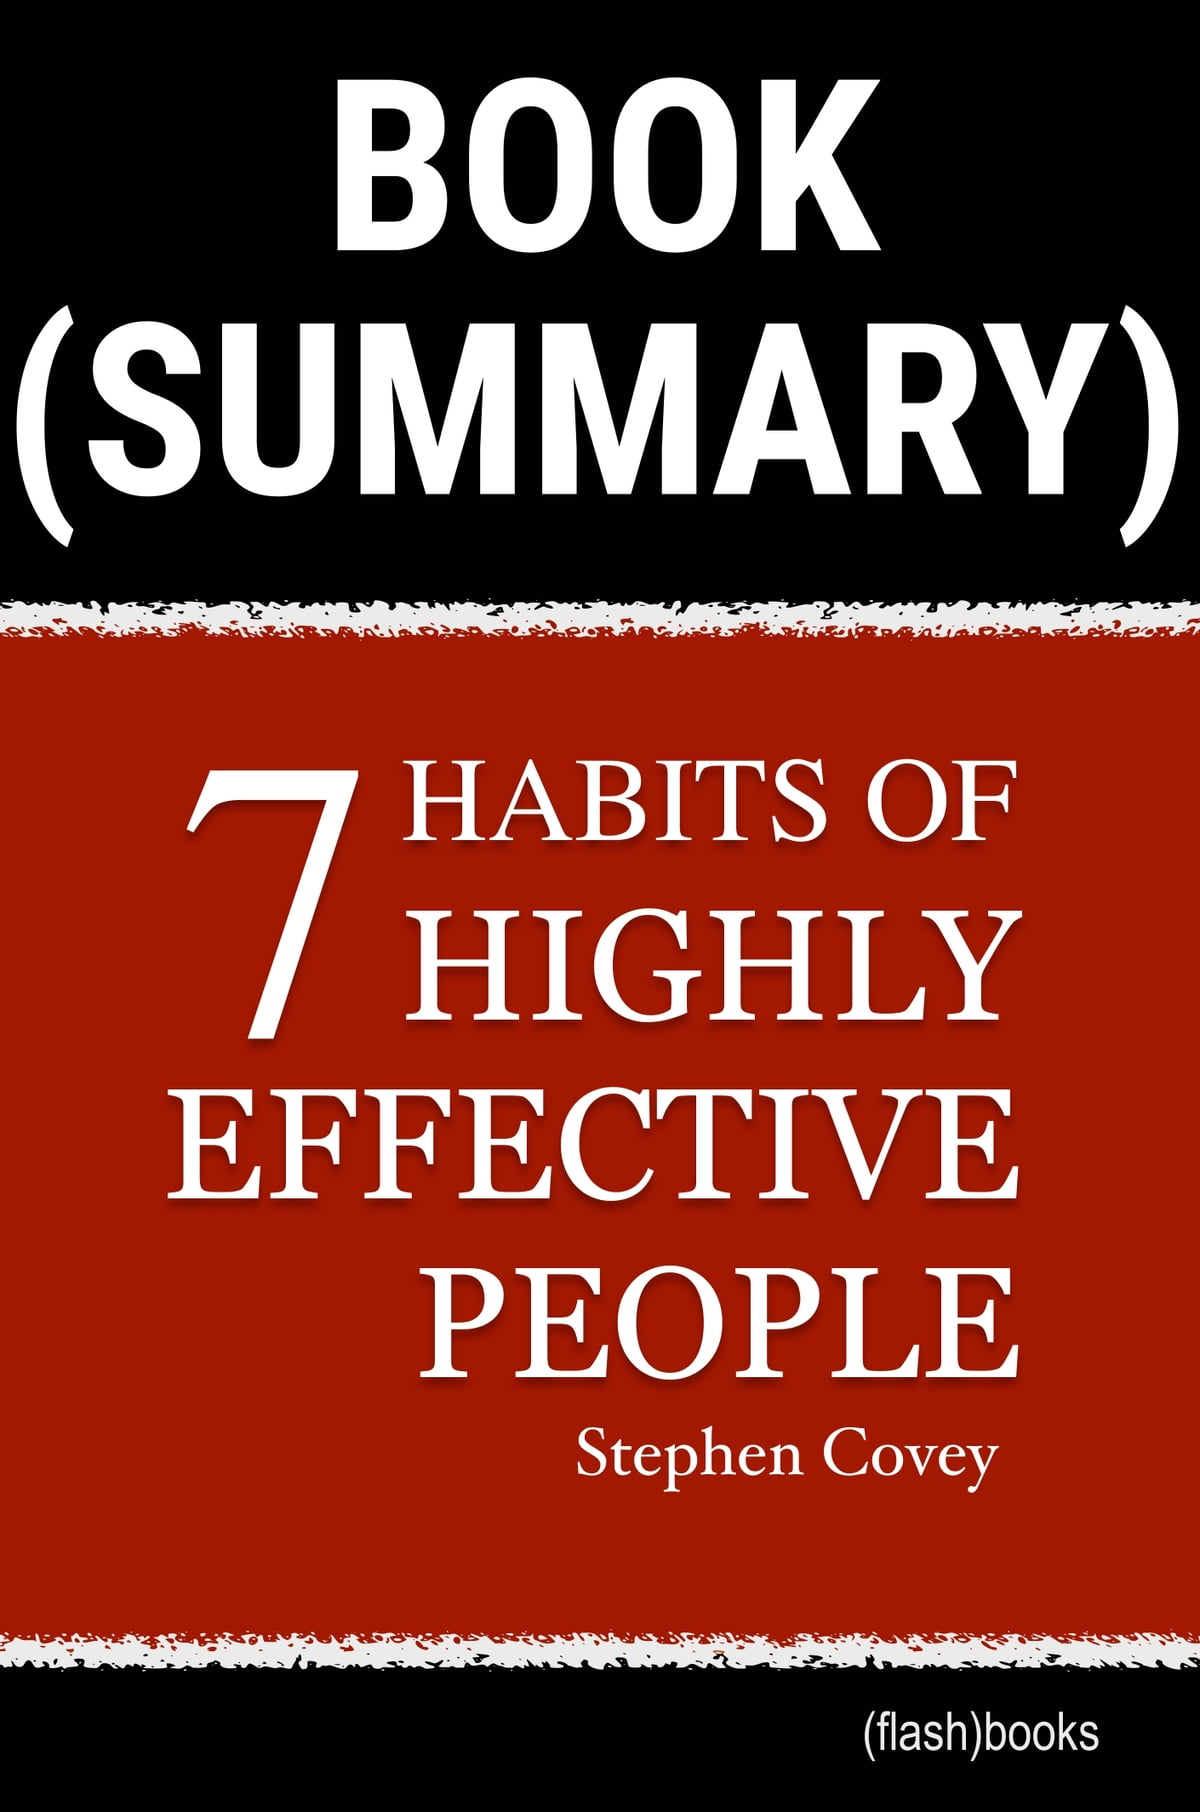 Book Summary The 7 Habits Of Highly Effective People By